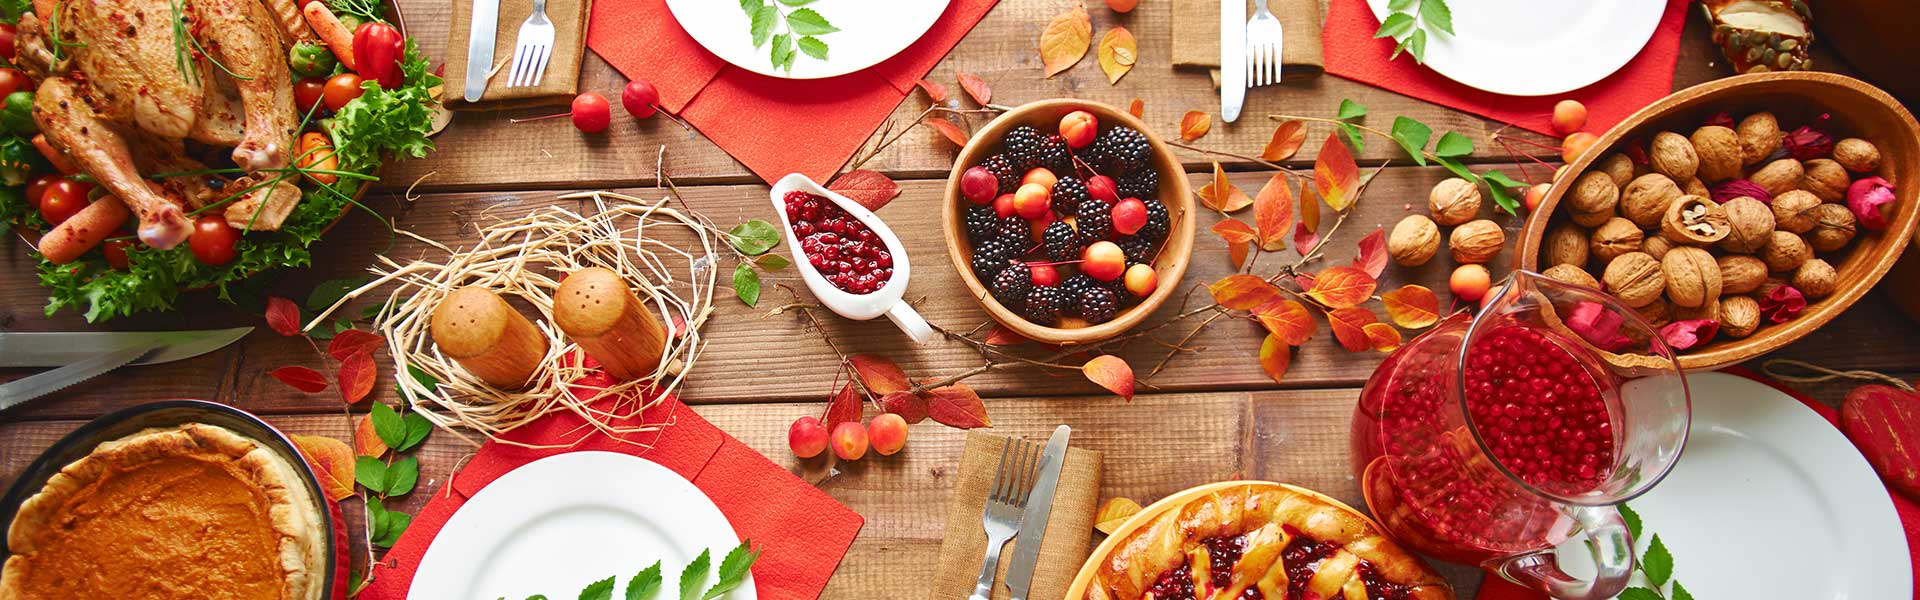 https://thefrenchgourmet.com/wp-content/uploads/2018/02/holiday-catering-thanksgiving-setup.jpg